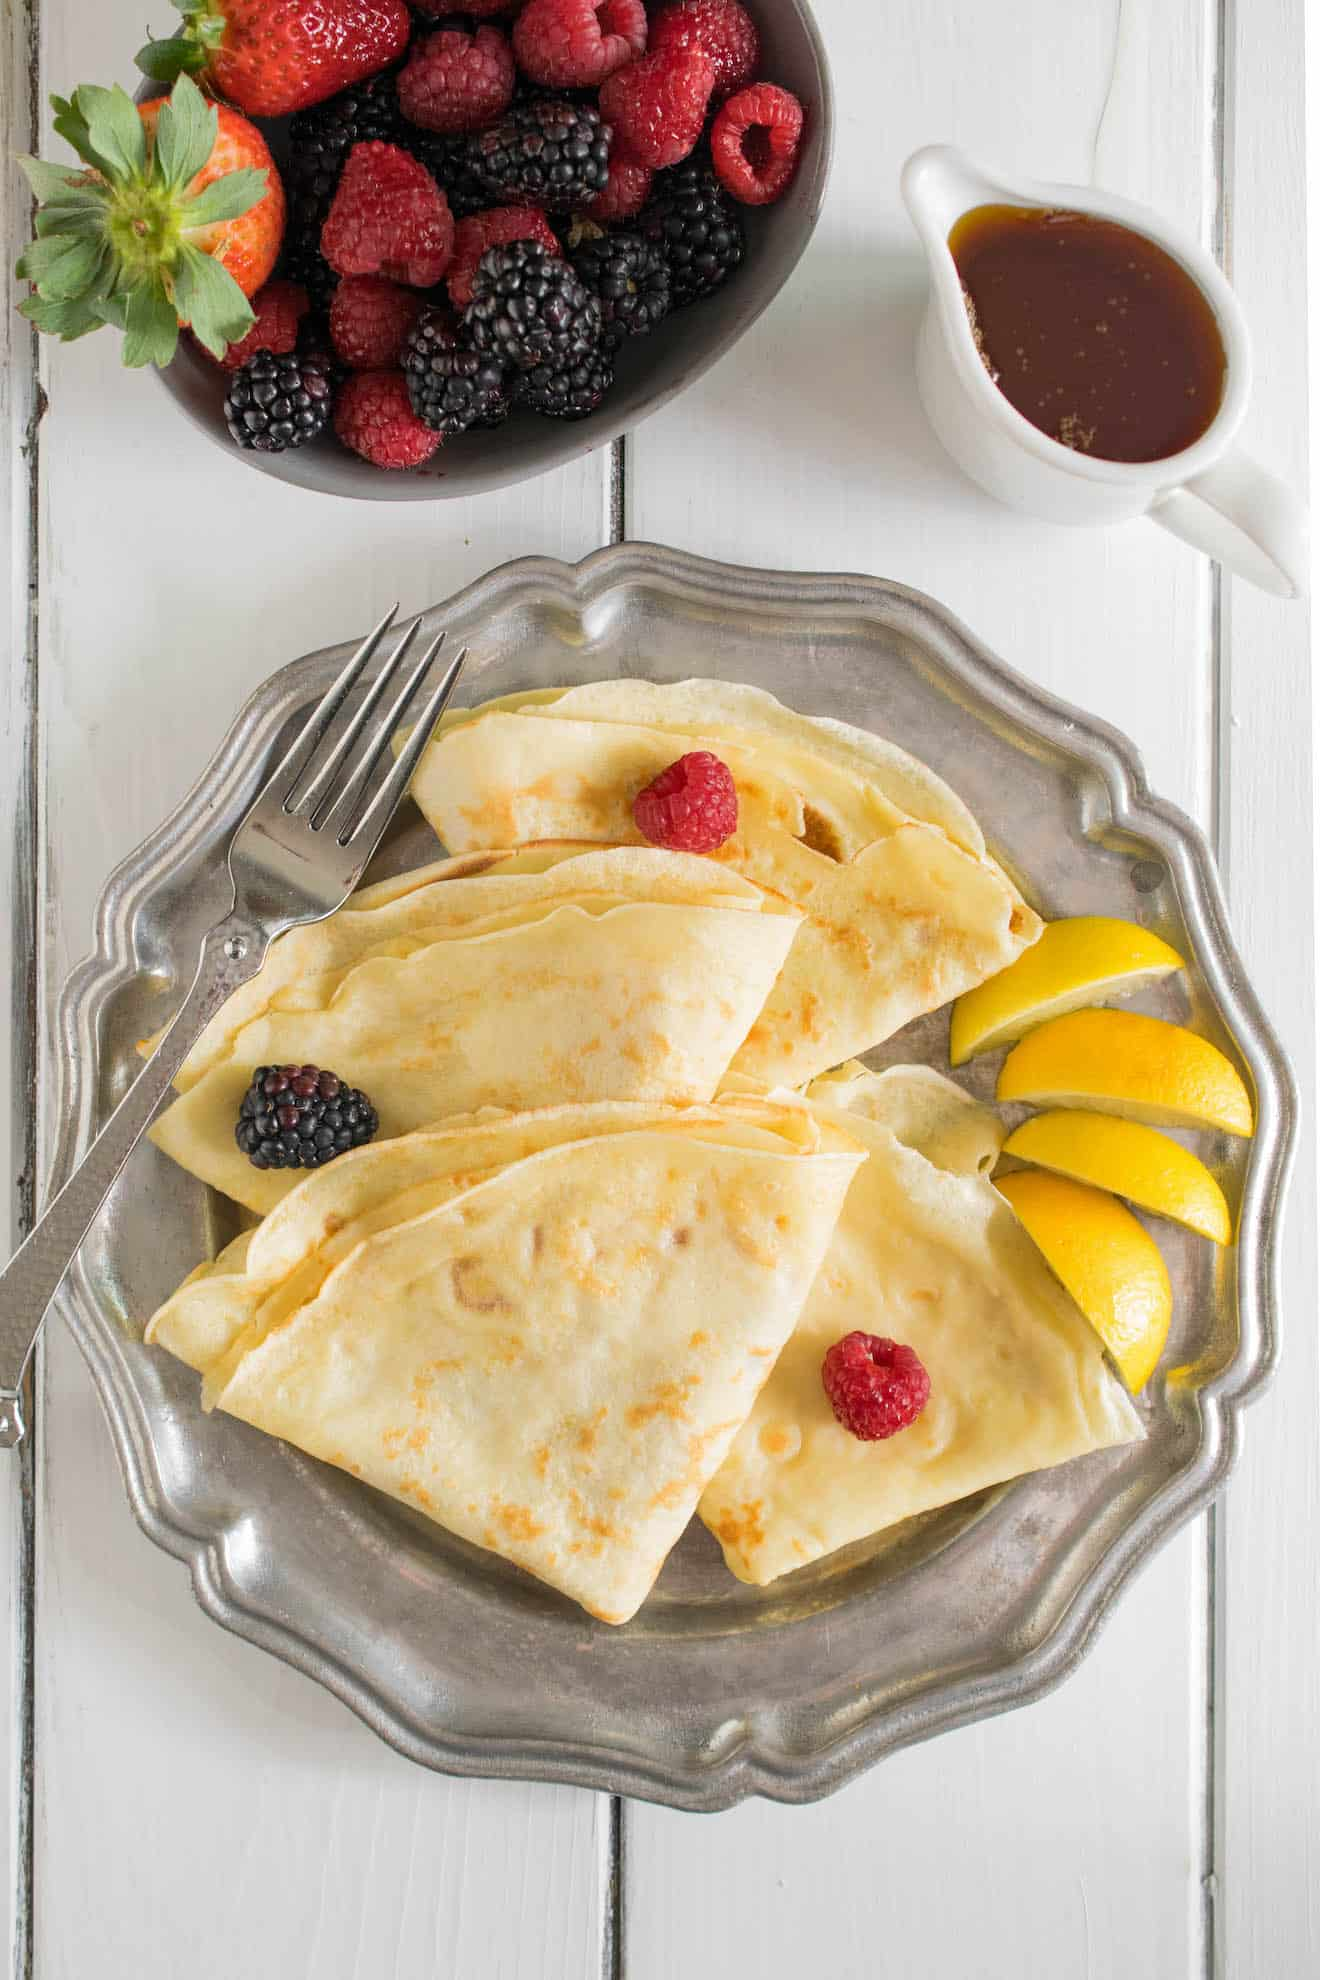 Thin crepe pancakes with lemon wedges fruit and syrup from overhead